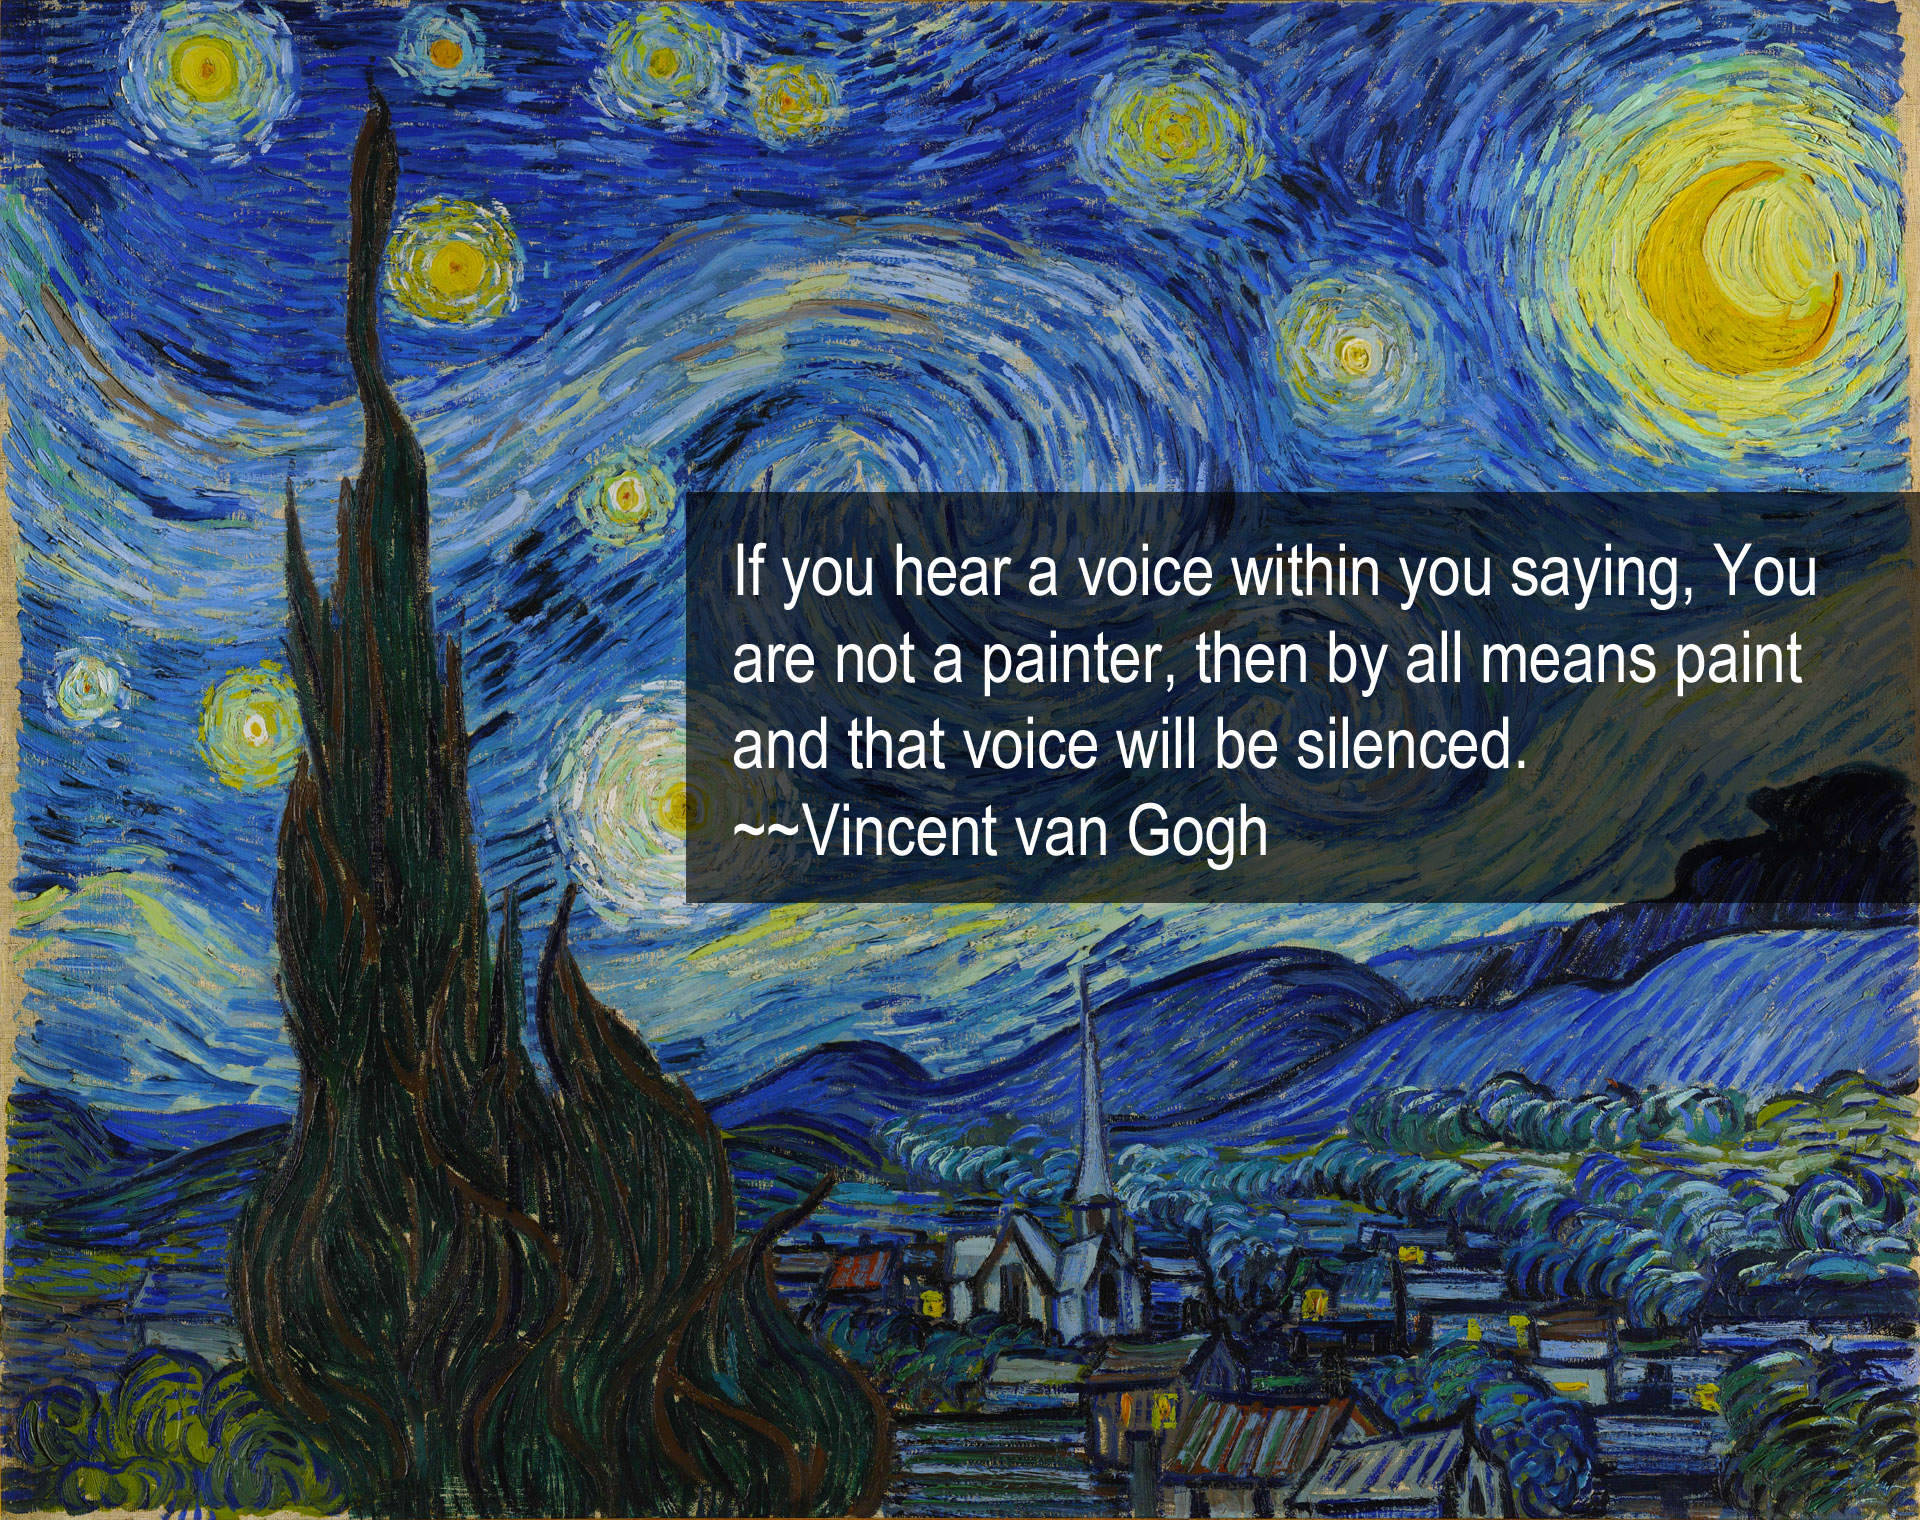 10 Motivating Van Gogh Quotes That Are So Beautiful They ...